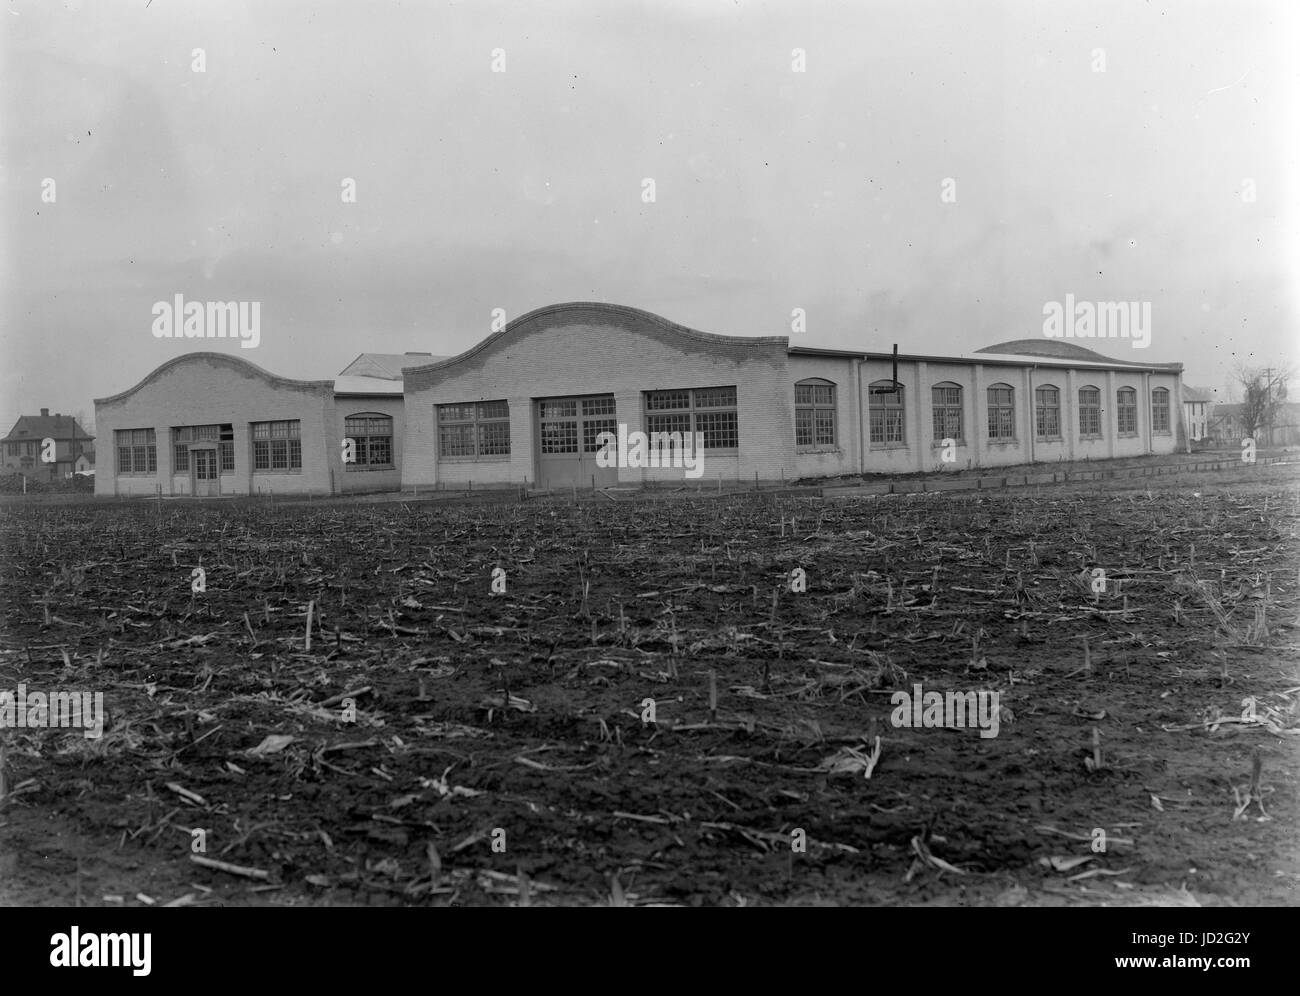 Exterior view of the Wright Company factory; Dayton, Ohio. - Stock Image